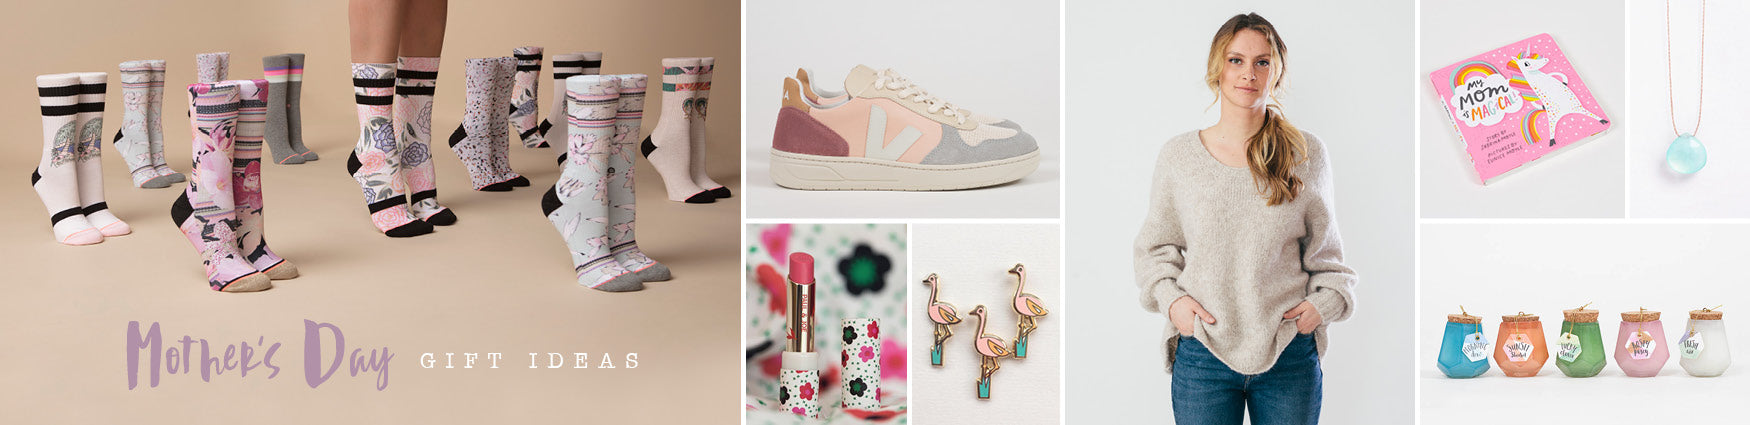 Shop our colourful edit of Mother's Day gifts featuring Stance Socks, Veja Trainers and American Vintage knitwear